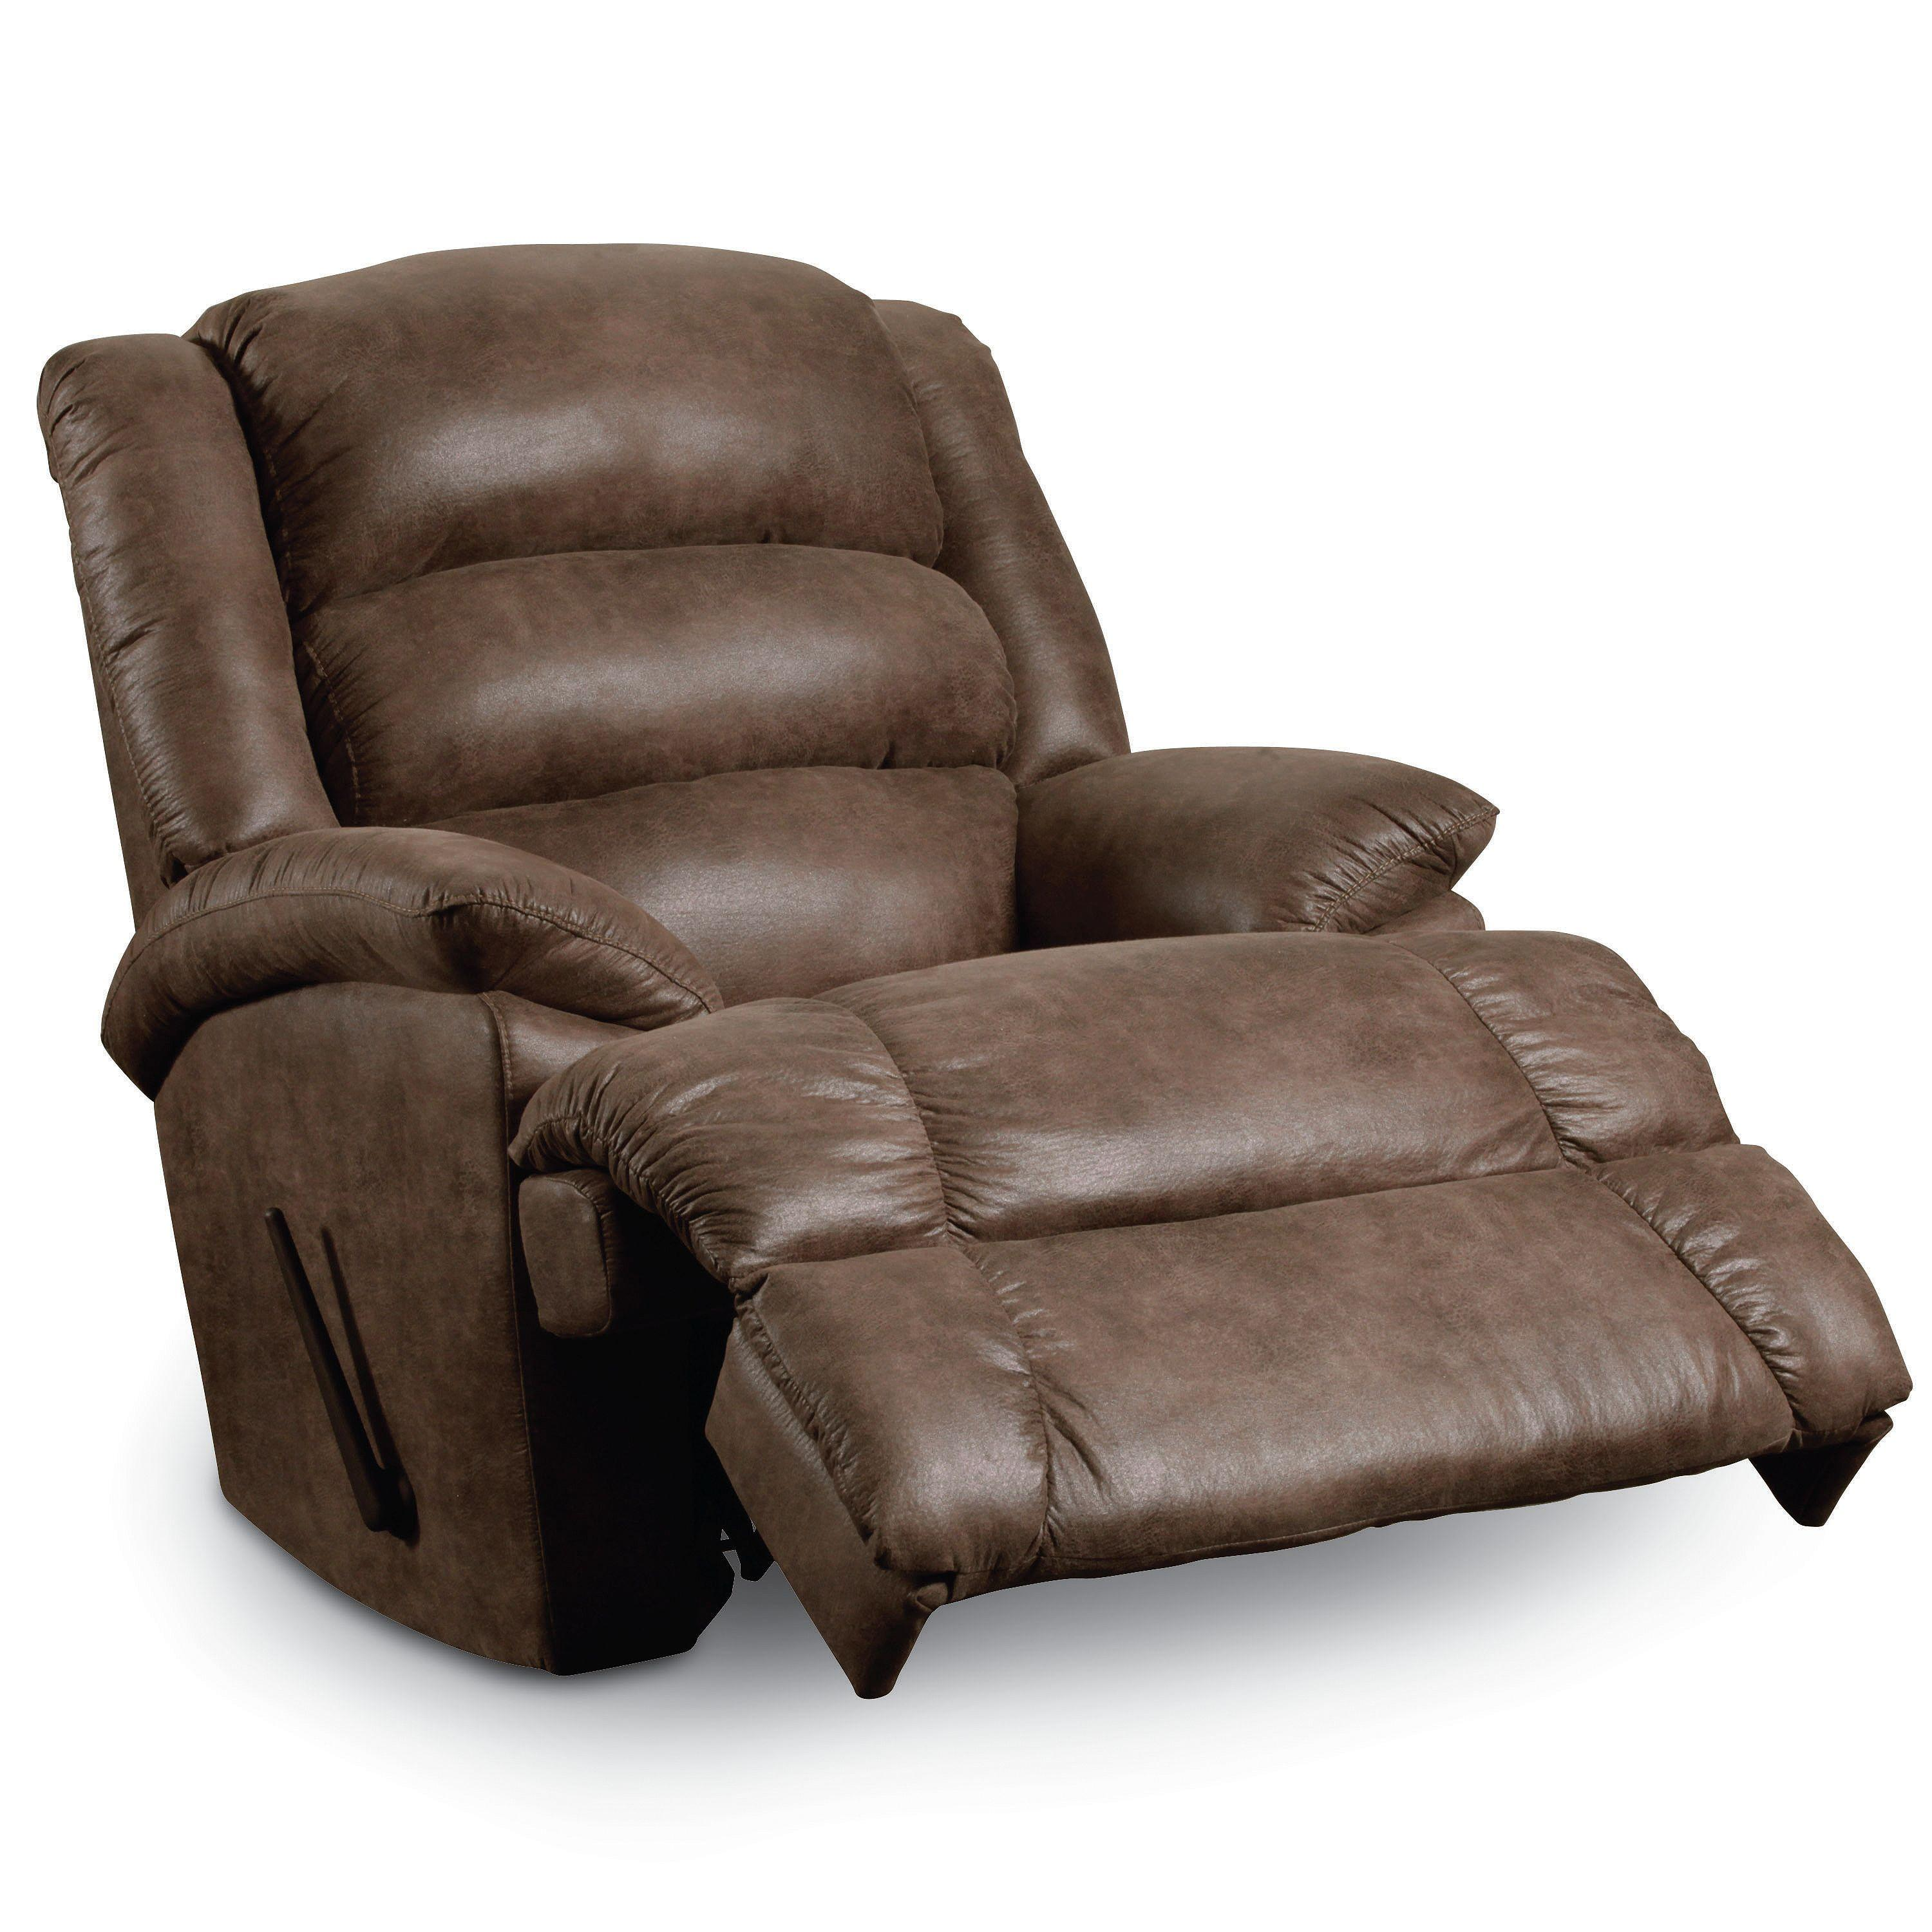 Lane Knox 8418 Comfortking 174 Big And Tall Rocker Recliner